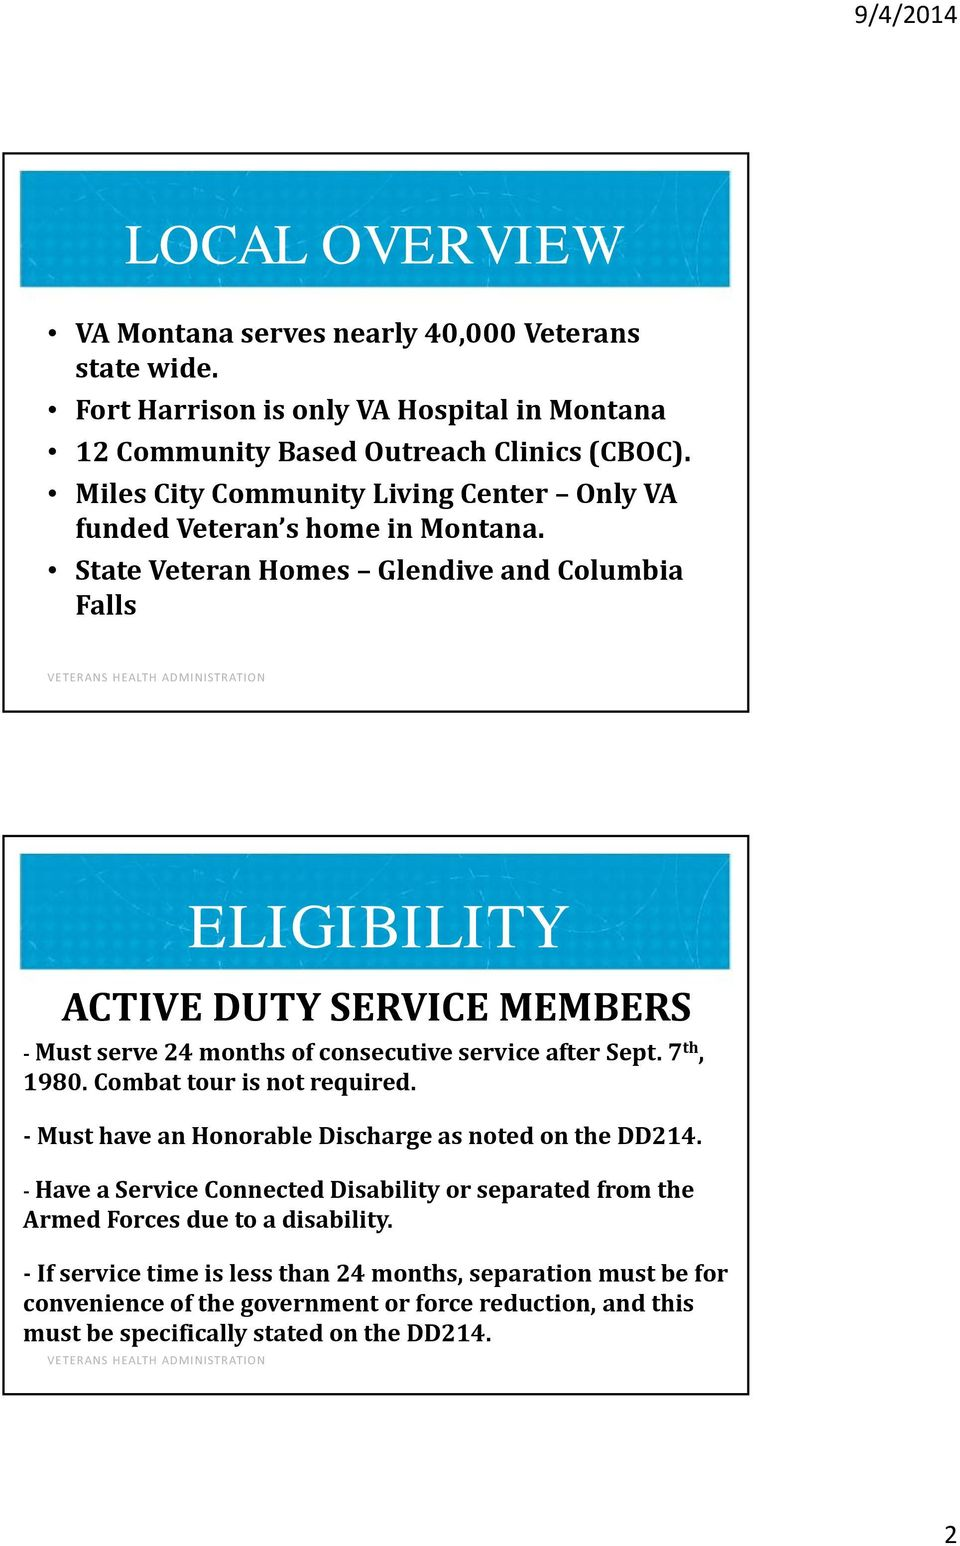 VA HEALTH CARE OVERVIEW AND ELIGIBILITY - PDF